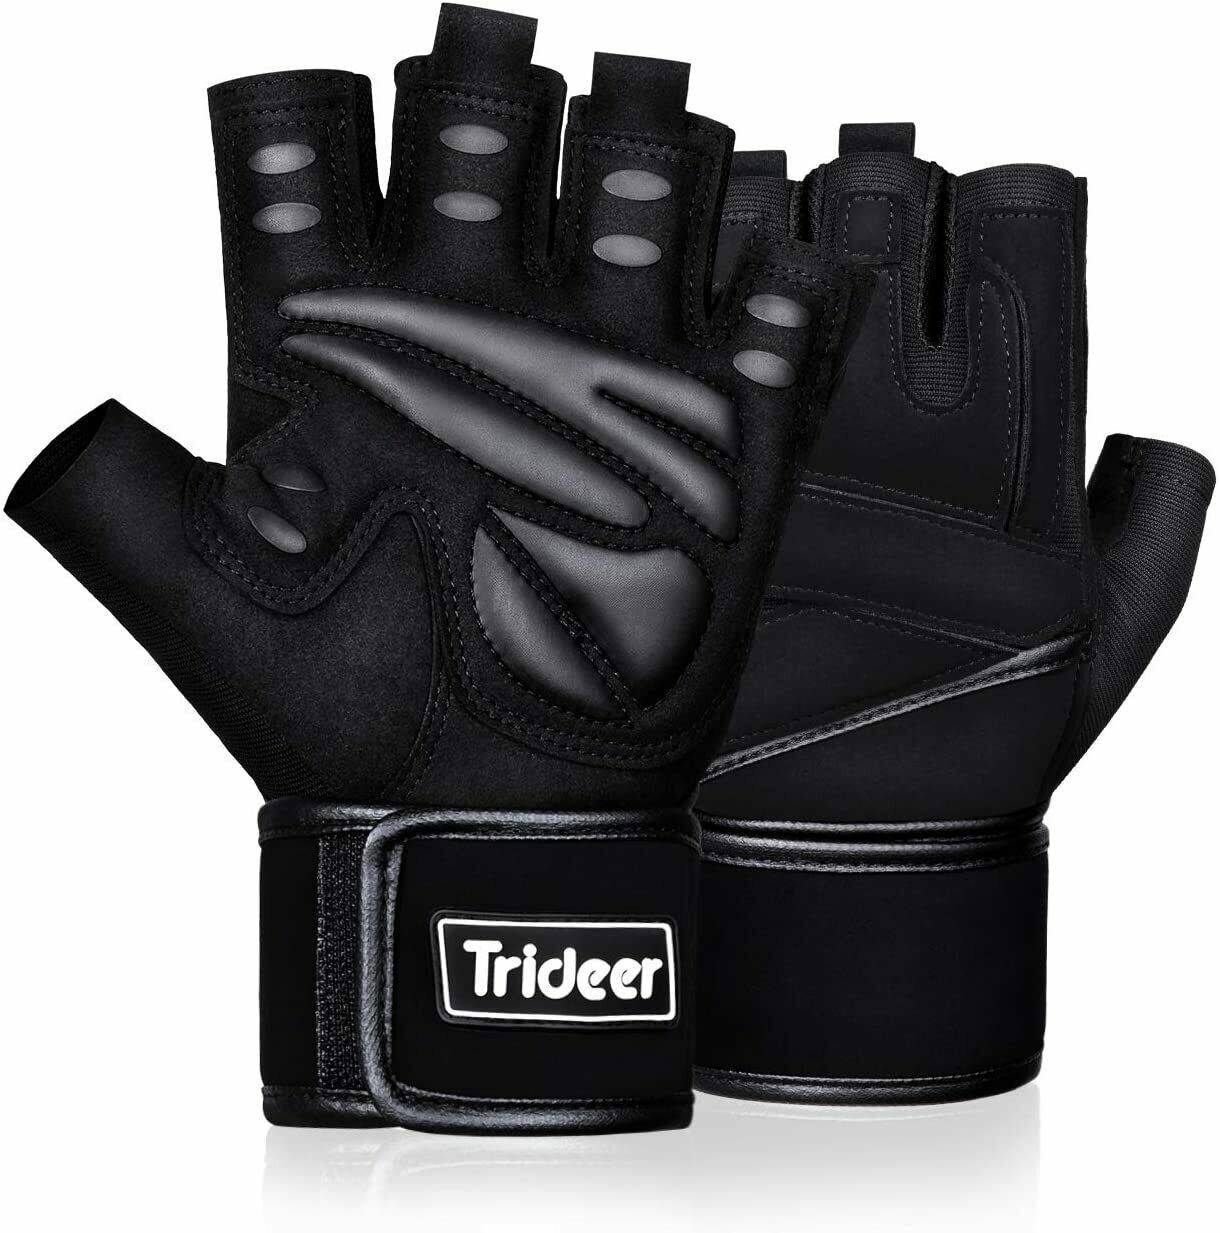 Trideer Padded Weight Lifting Gloves, Gym Gloves, Workout Gloves, Rowing Gloves